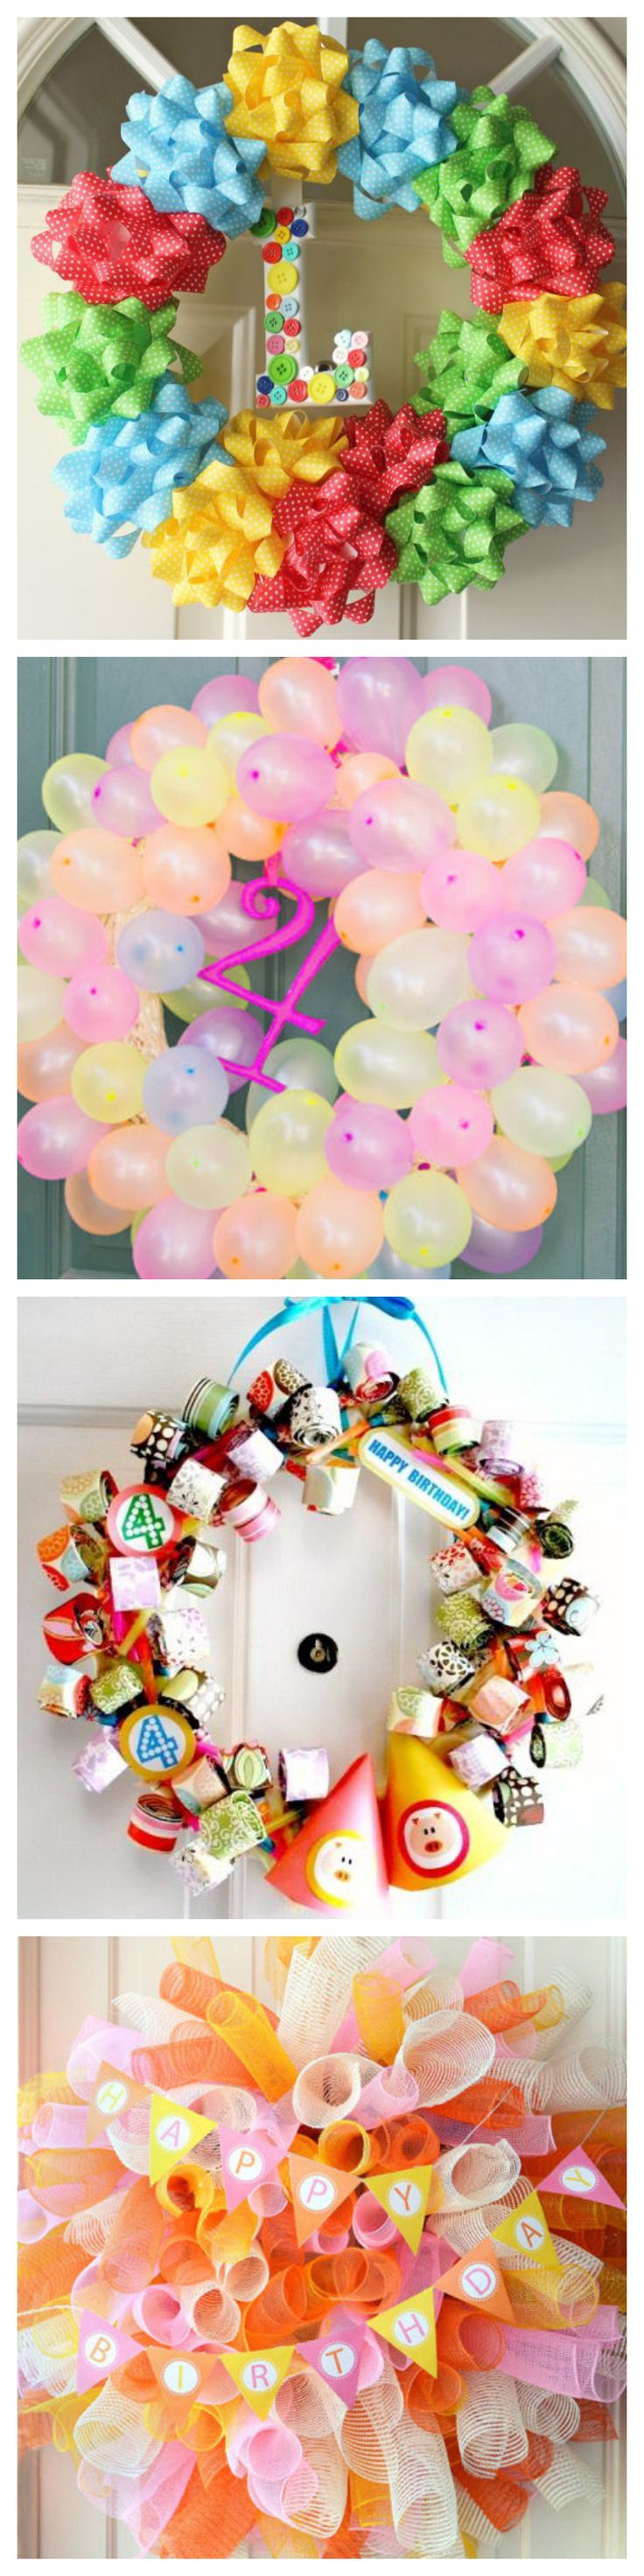 homemade birthday party wreaths diy partyideas